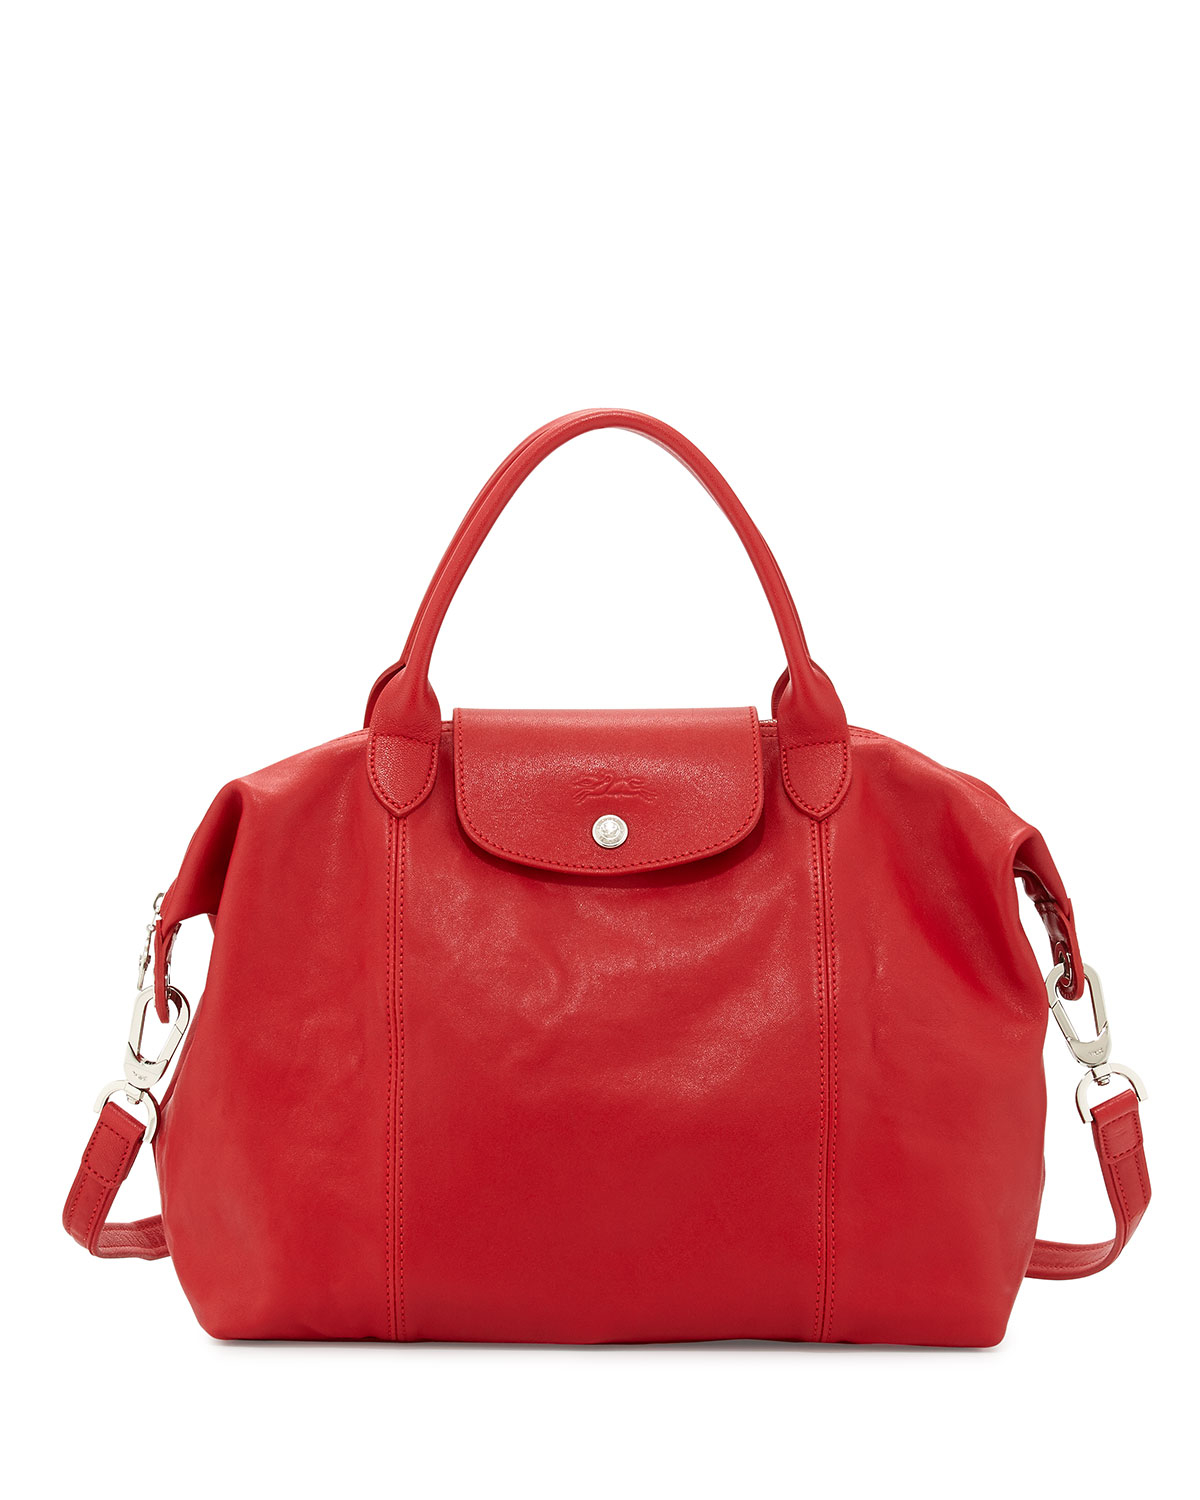 Longchamp Le Pliage Cuir Handbag With Strap in Red